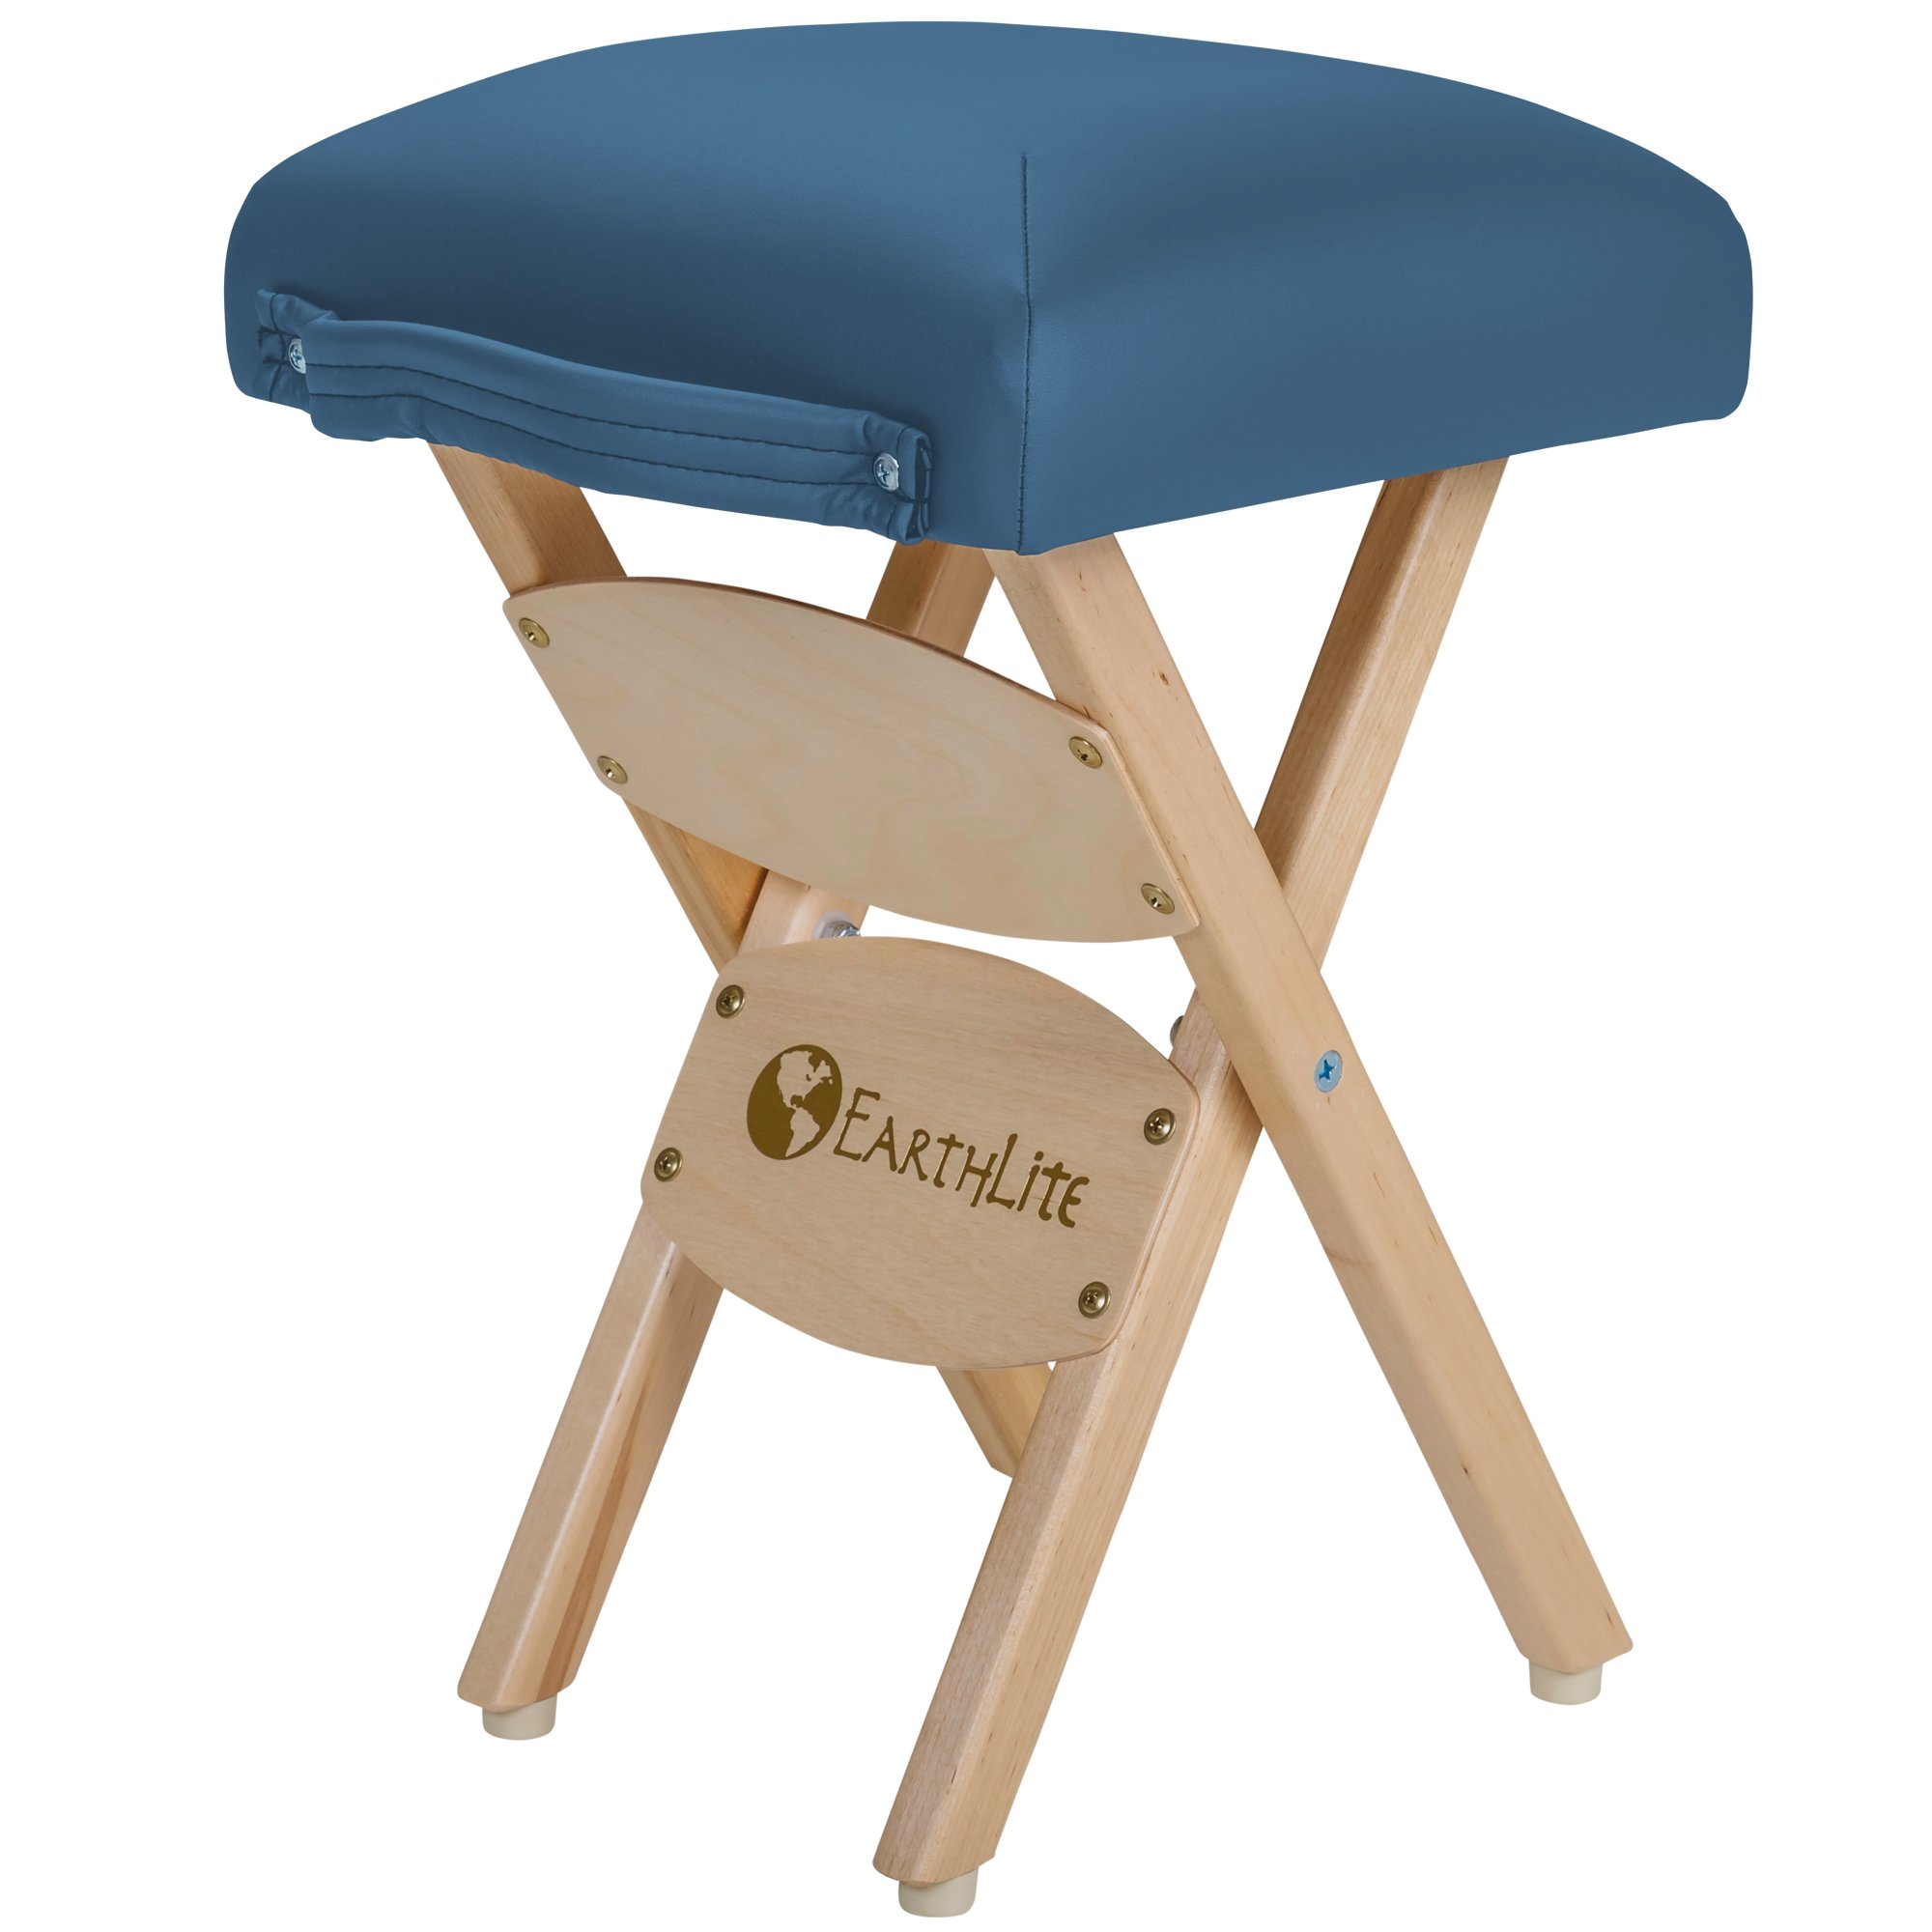 EARTHLITE Wooden Folding Stool - Hardwood Maple, CFC-Free, Massage Table Medical Spa Facial Salon Chair, Mystic Blue by EARTHLITE